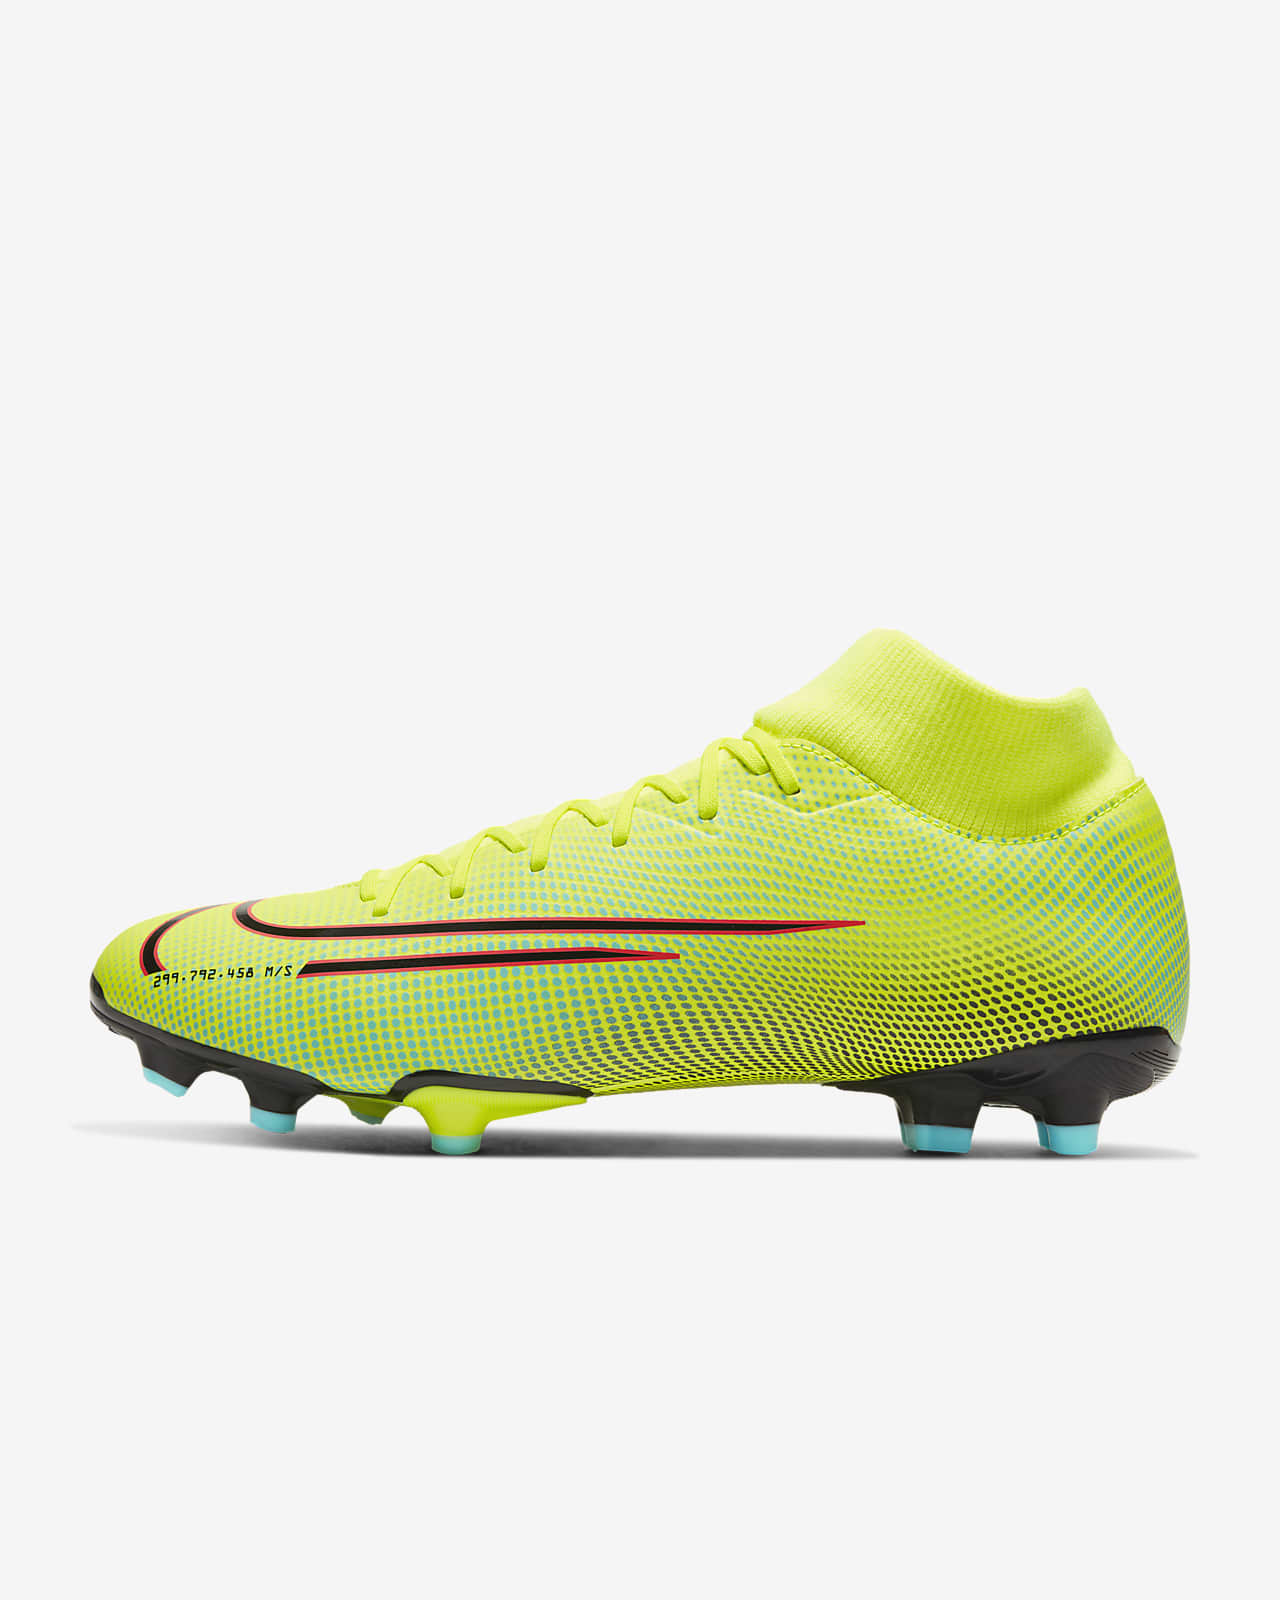 Chaussure de football multi surfaces à crampons Nike Mercurial Superfly 7 Academy MDS MG